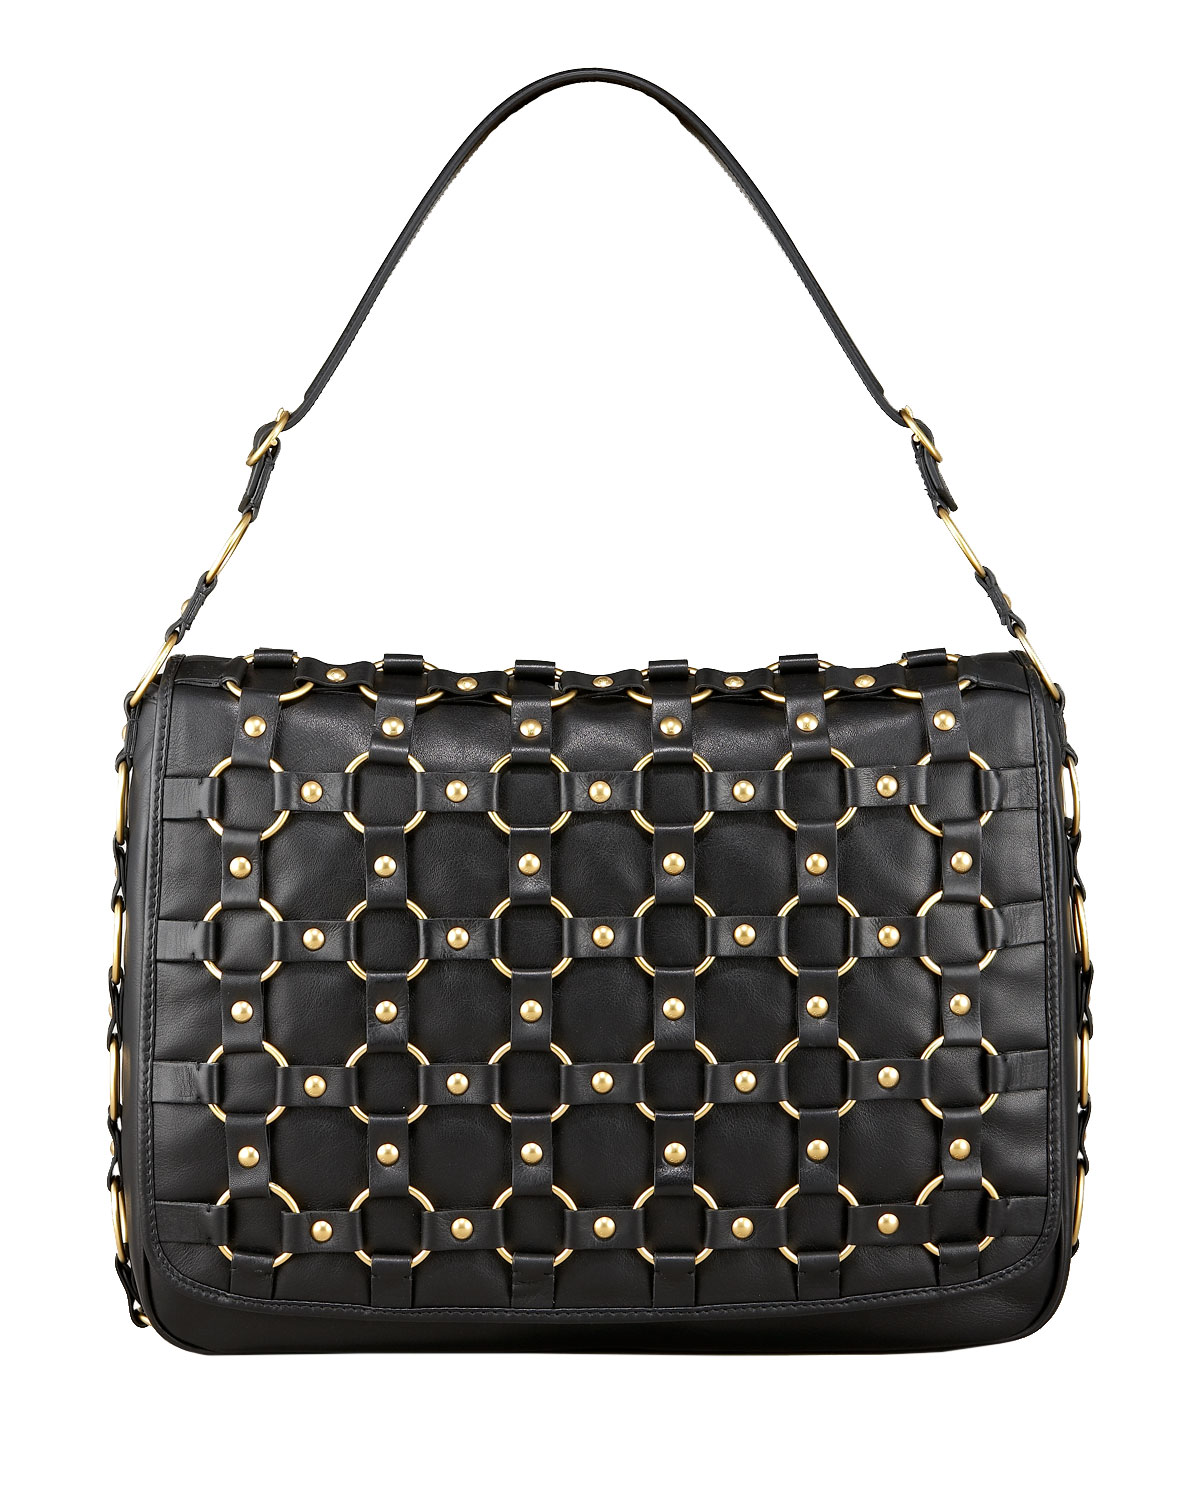 Croisette Shoulder Flap Bag - Dior - Bergdorf Goodman :  handbag croisette bag shoulder